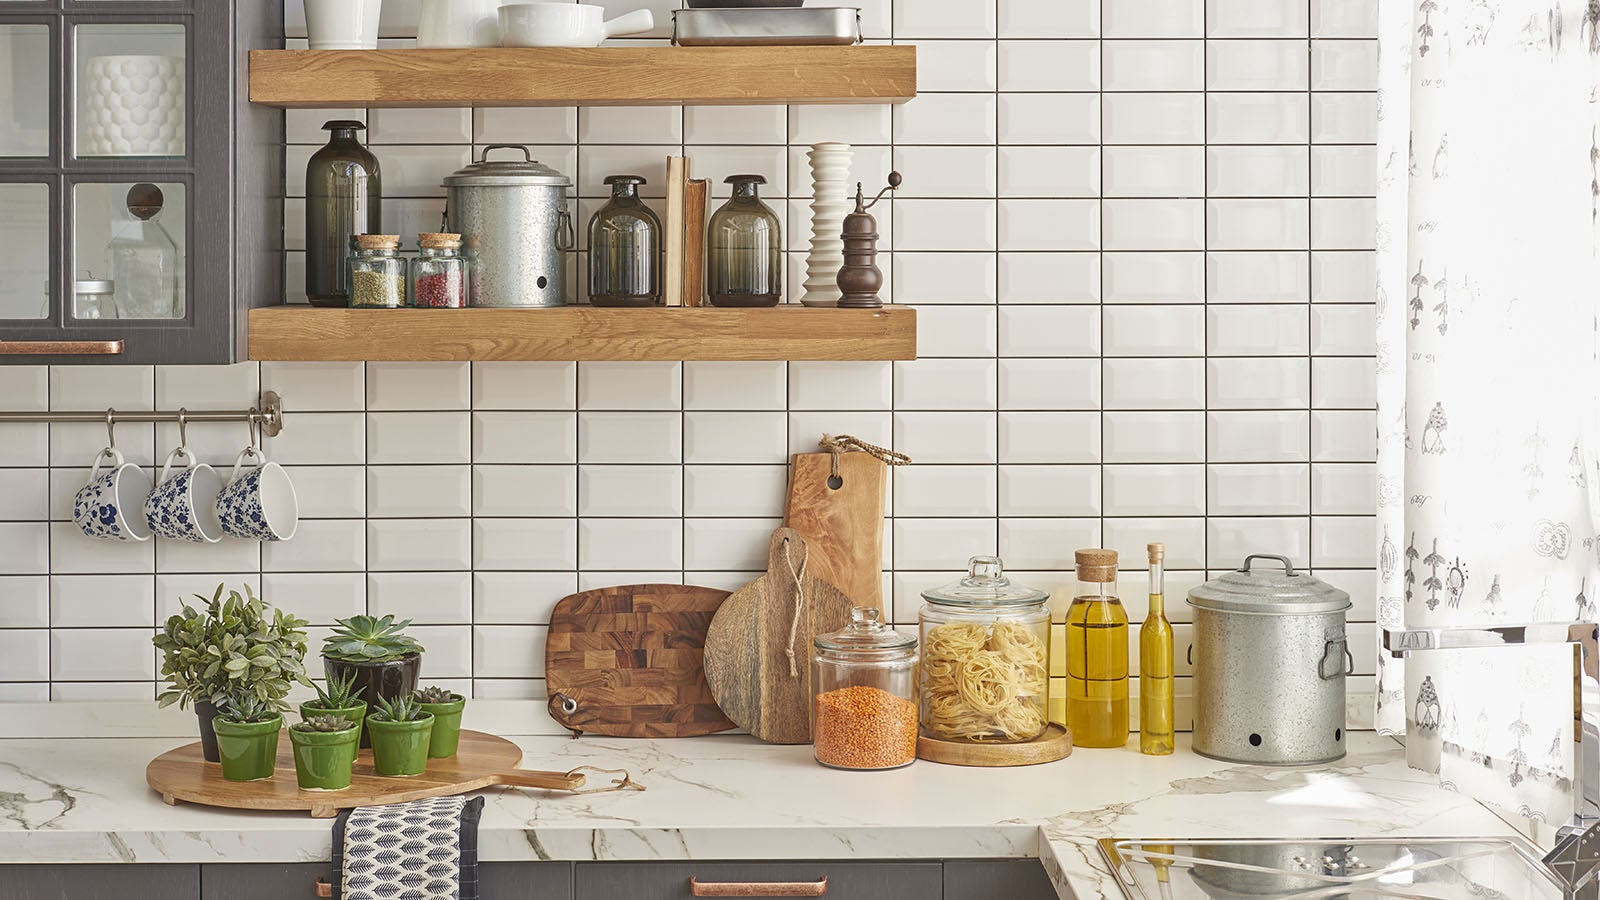 Beautiful white clean kitchen showing olive oil and full shelves